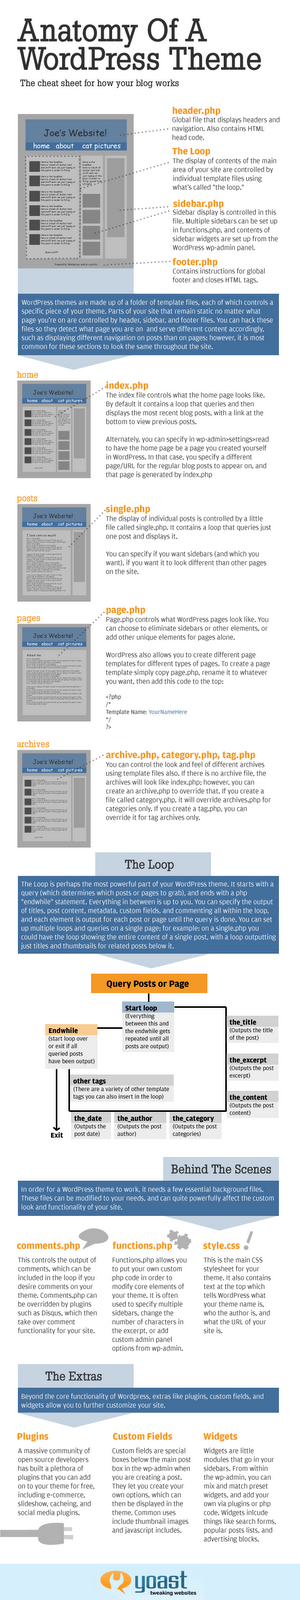 Infographic of Anatomy of a WordPress Theme